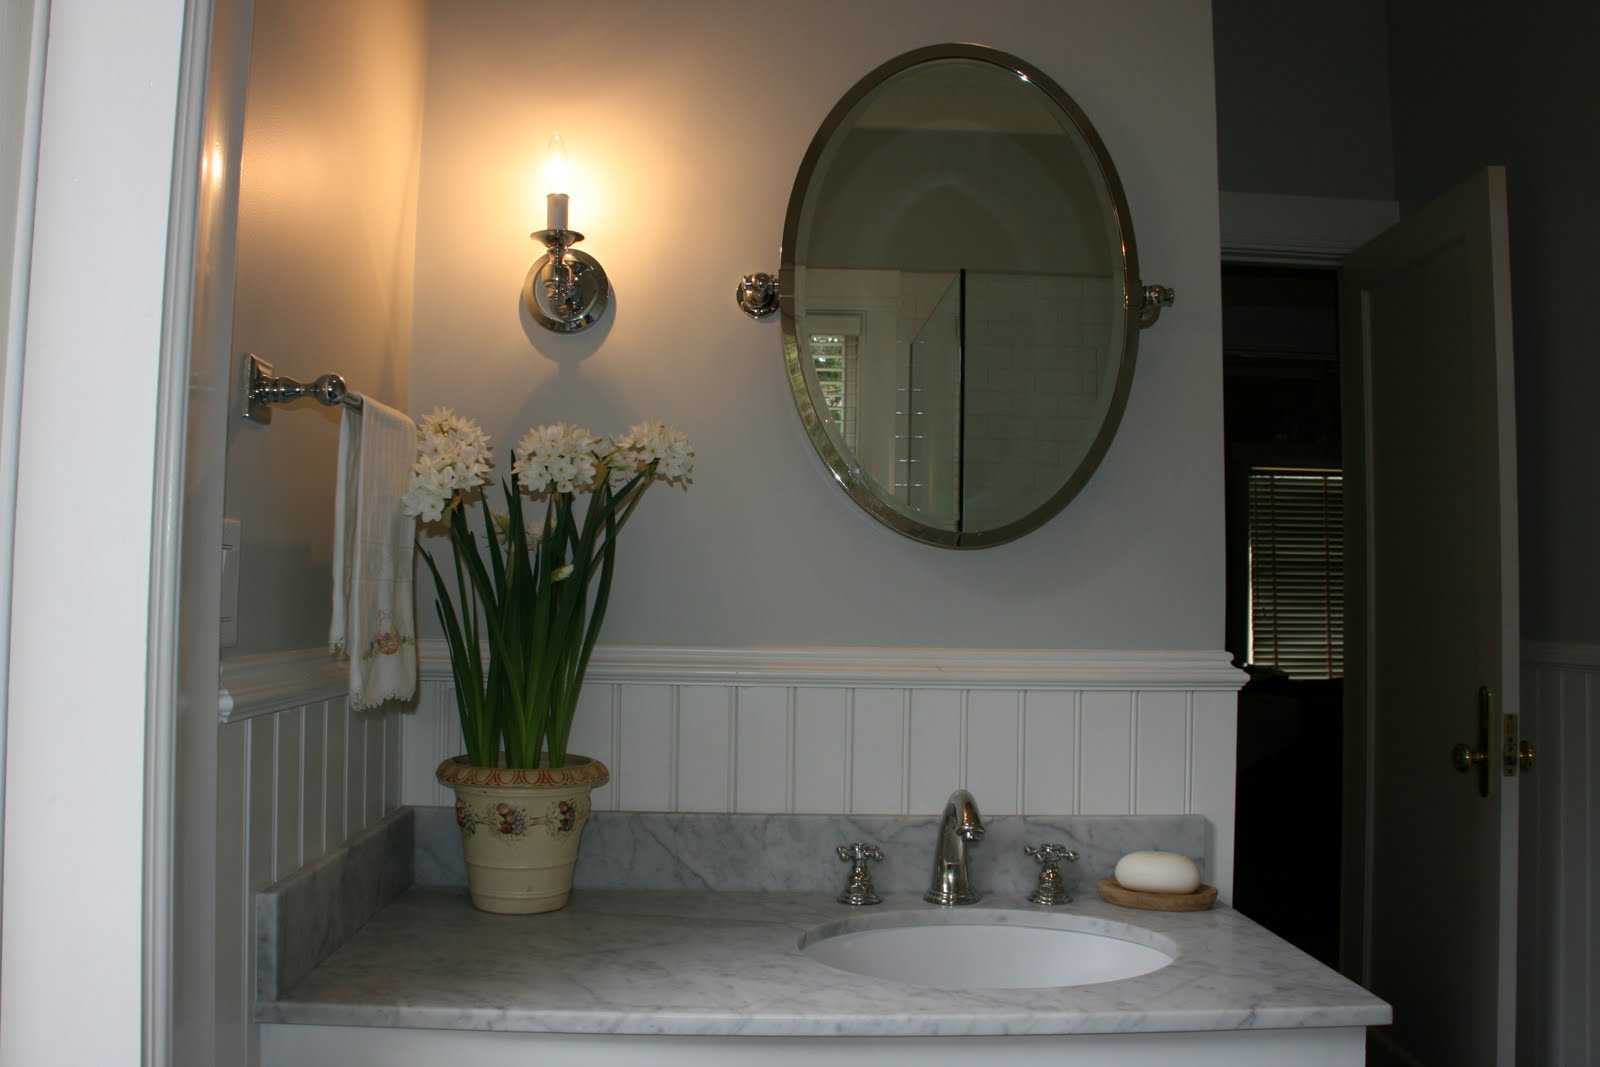 oval bathroom mirrors toilet flange height above floor bathroom